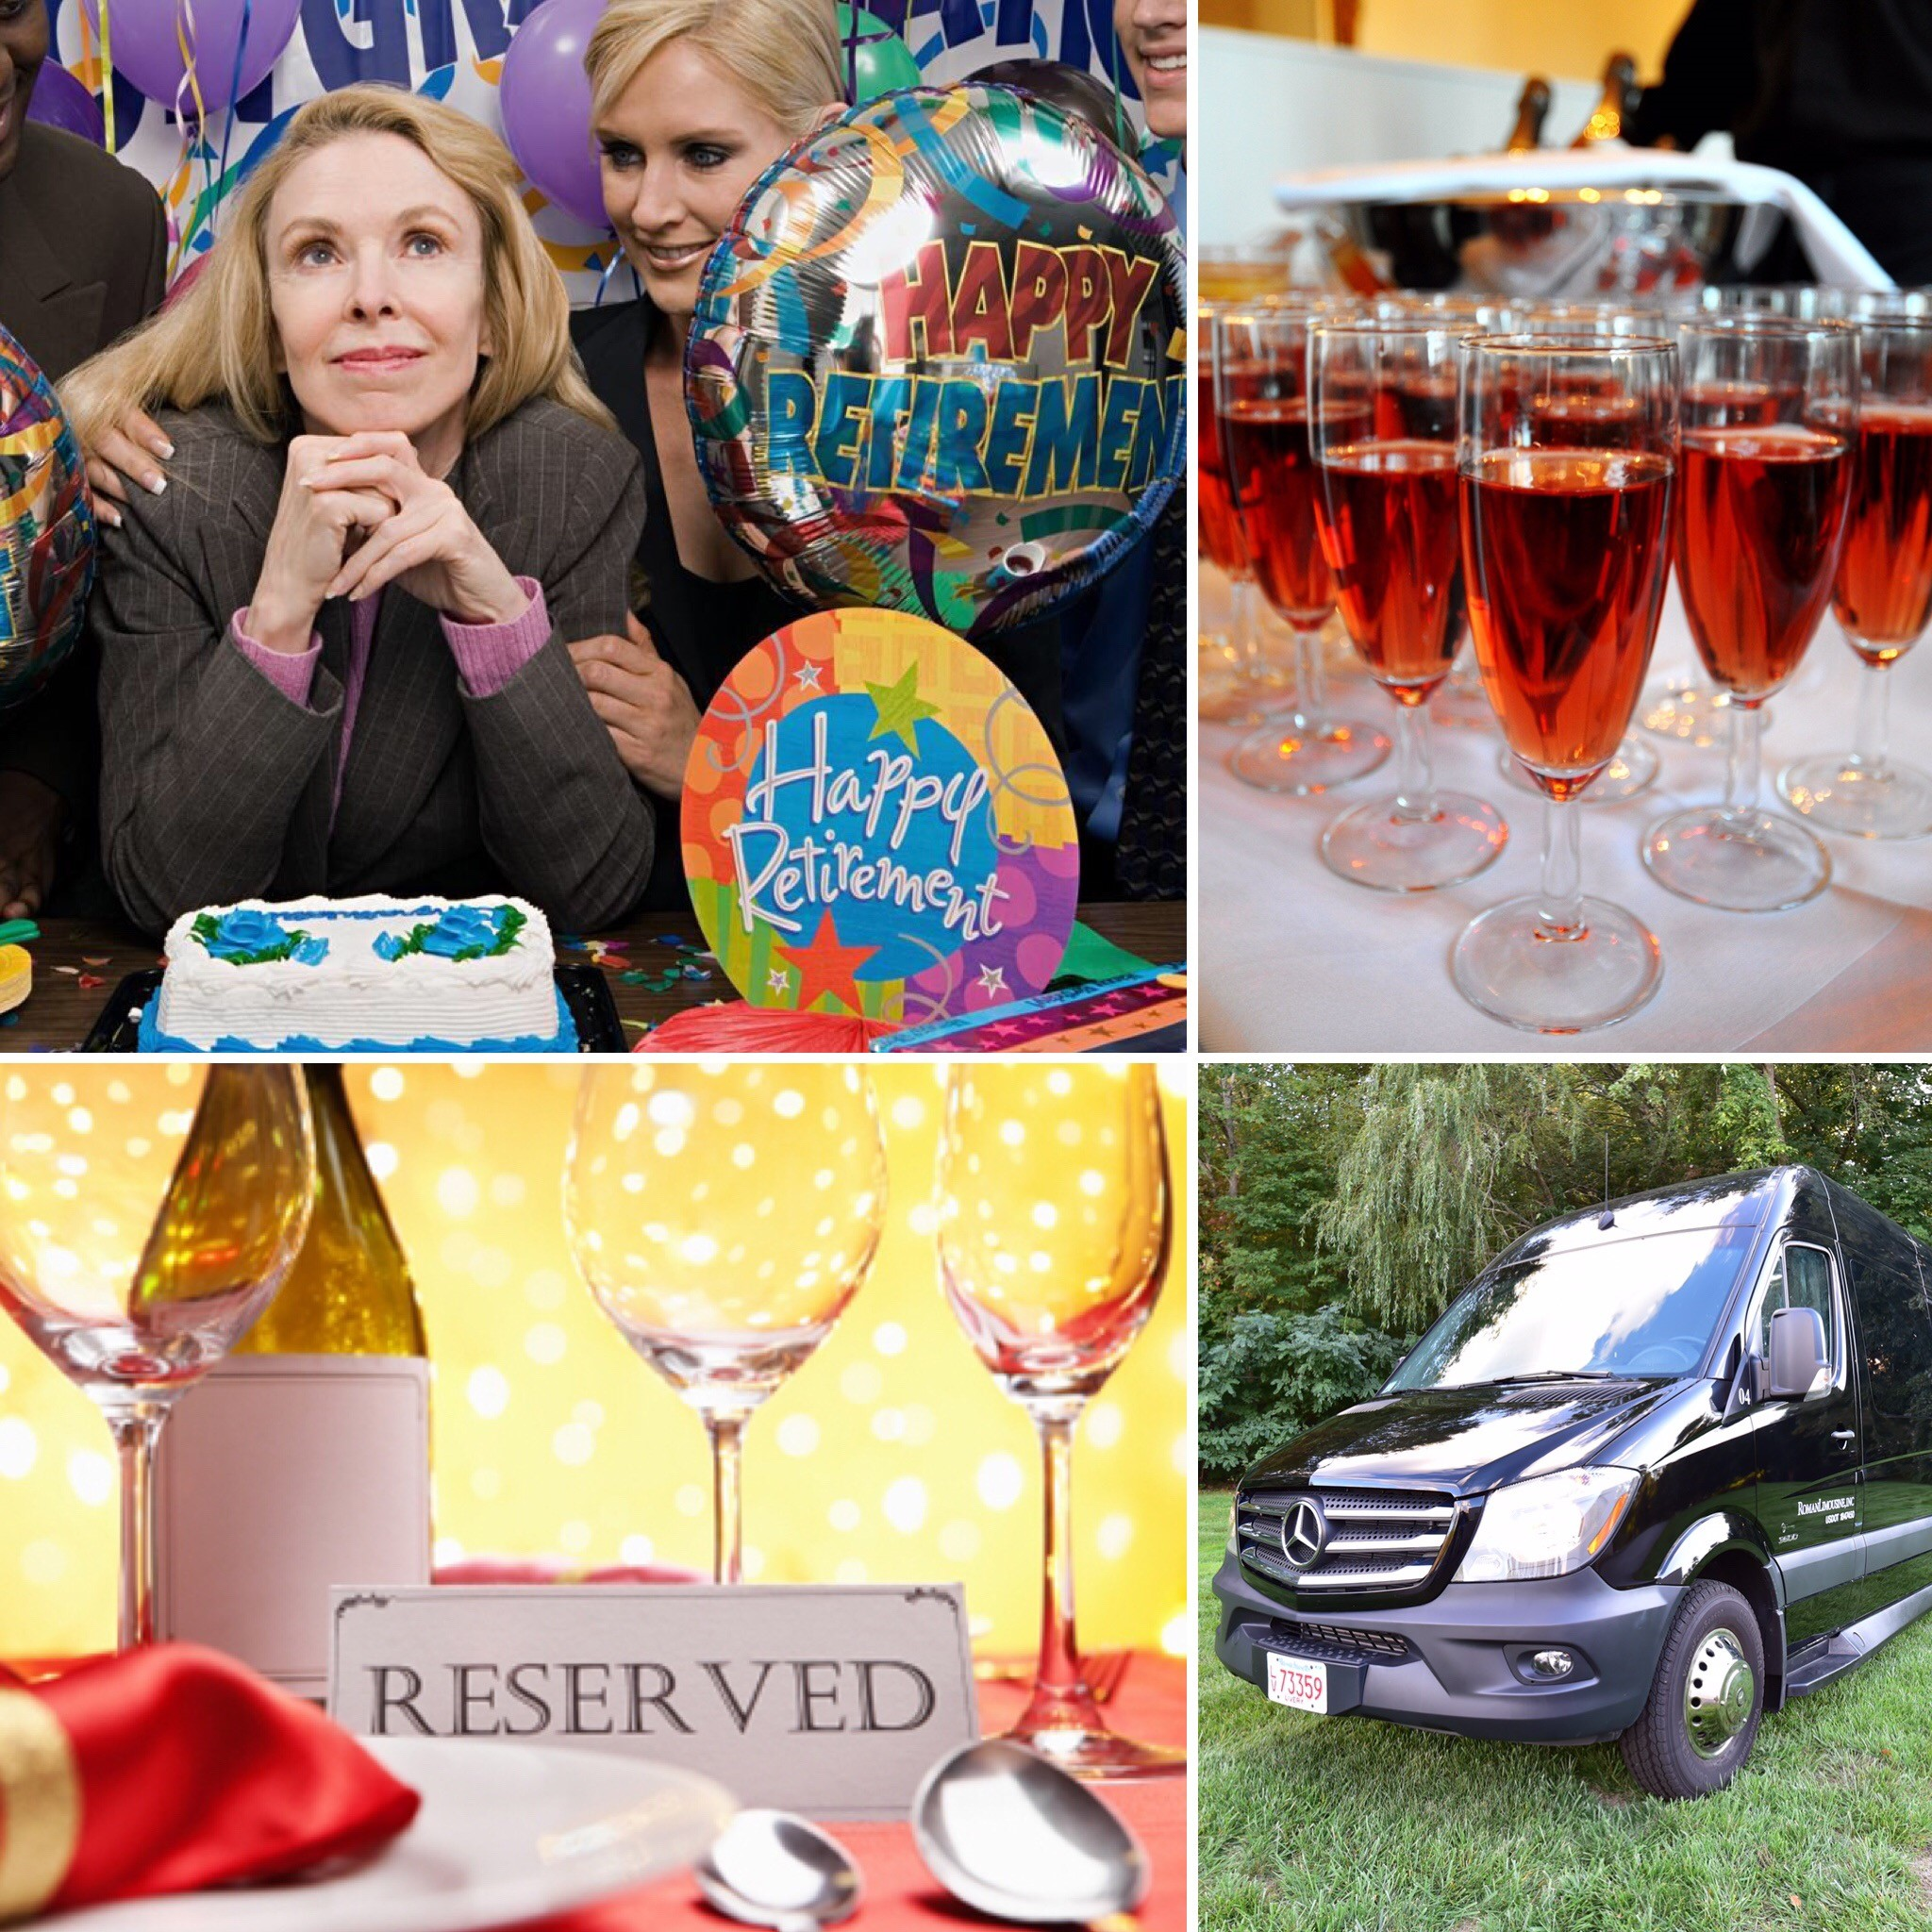 18th Birthday Party Ideas Limo Hire Party Bus: Special Occasions Limo Service, Special Event Party Bus